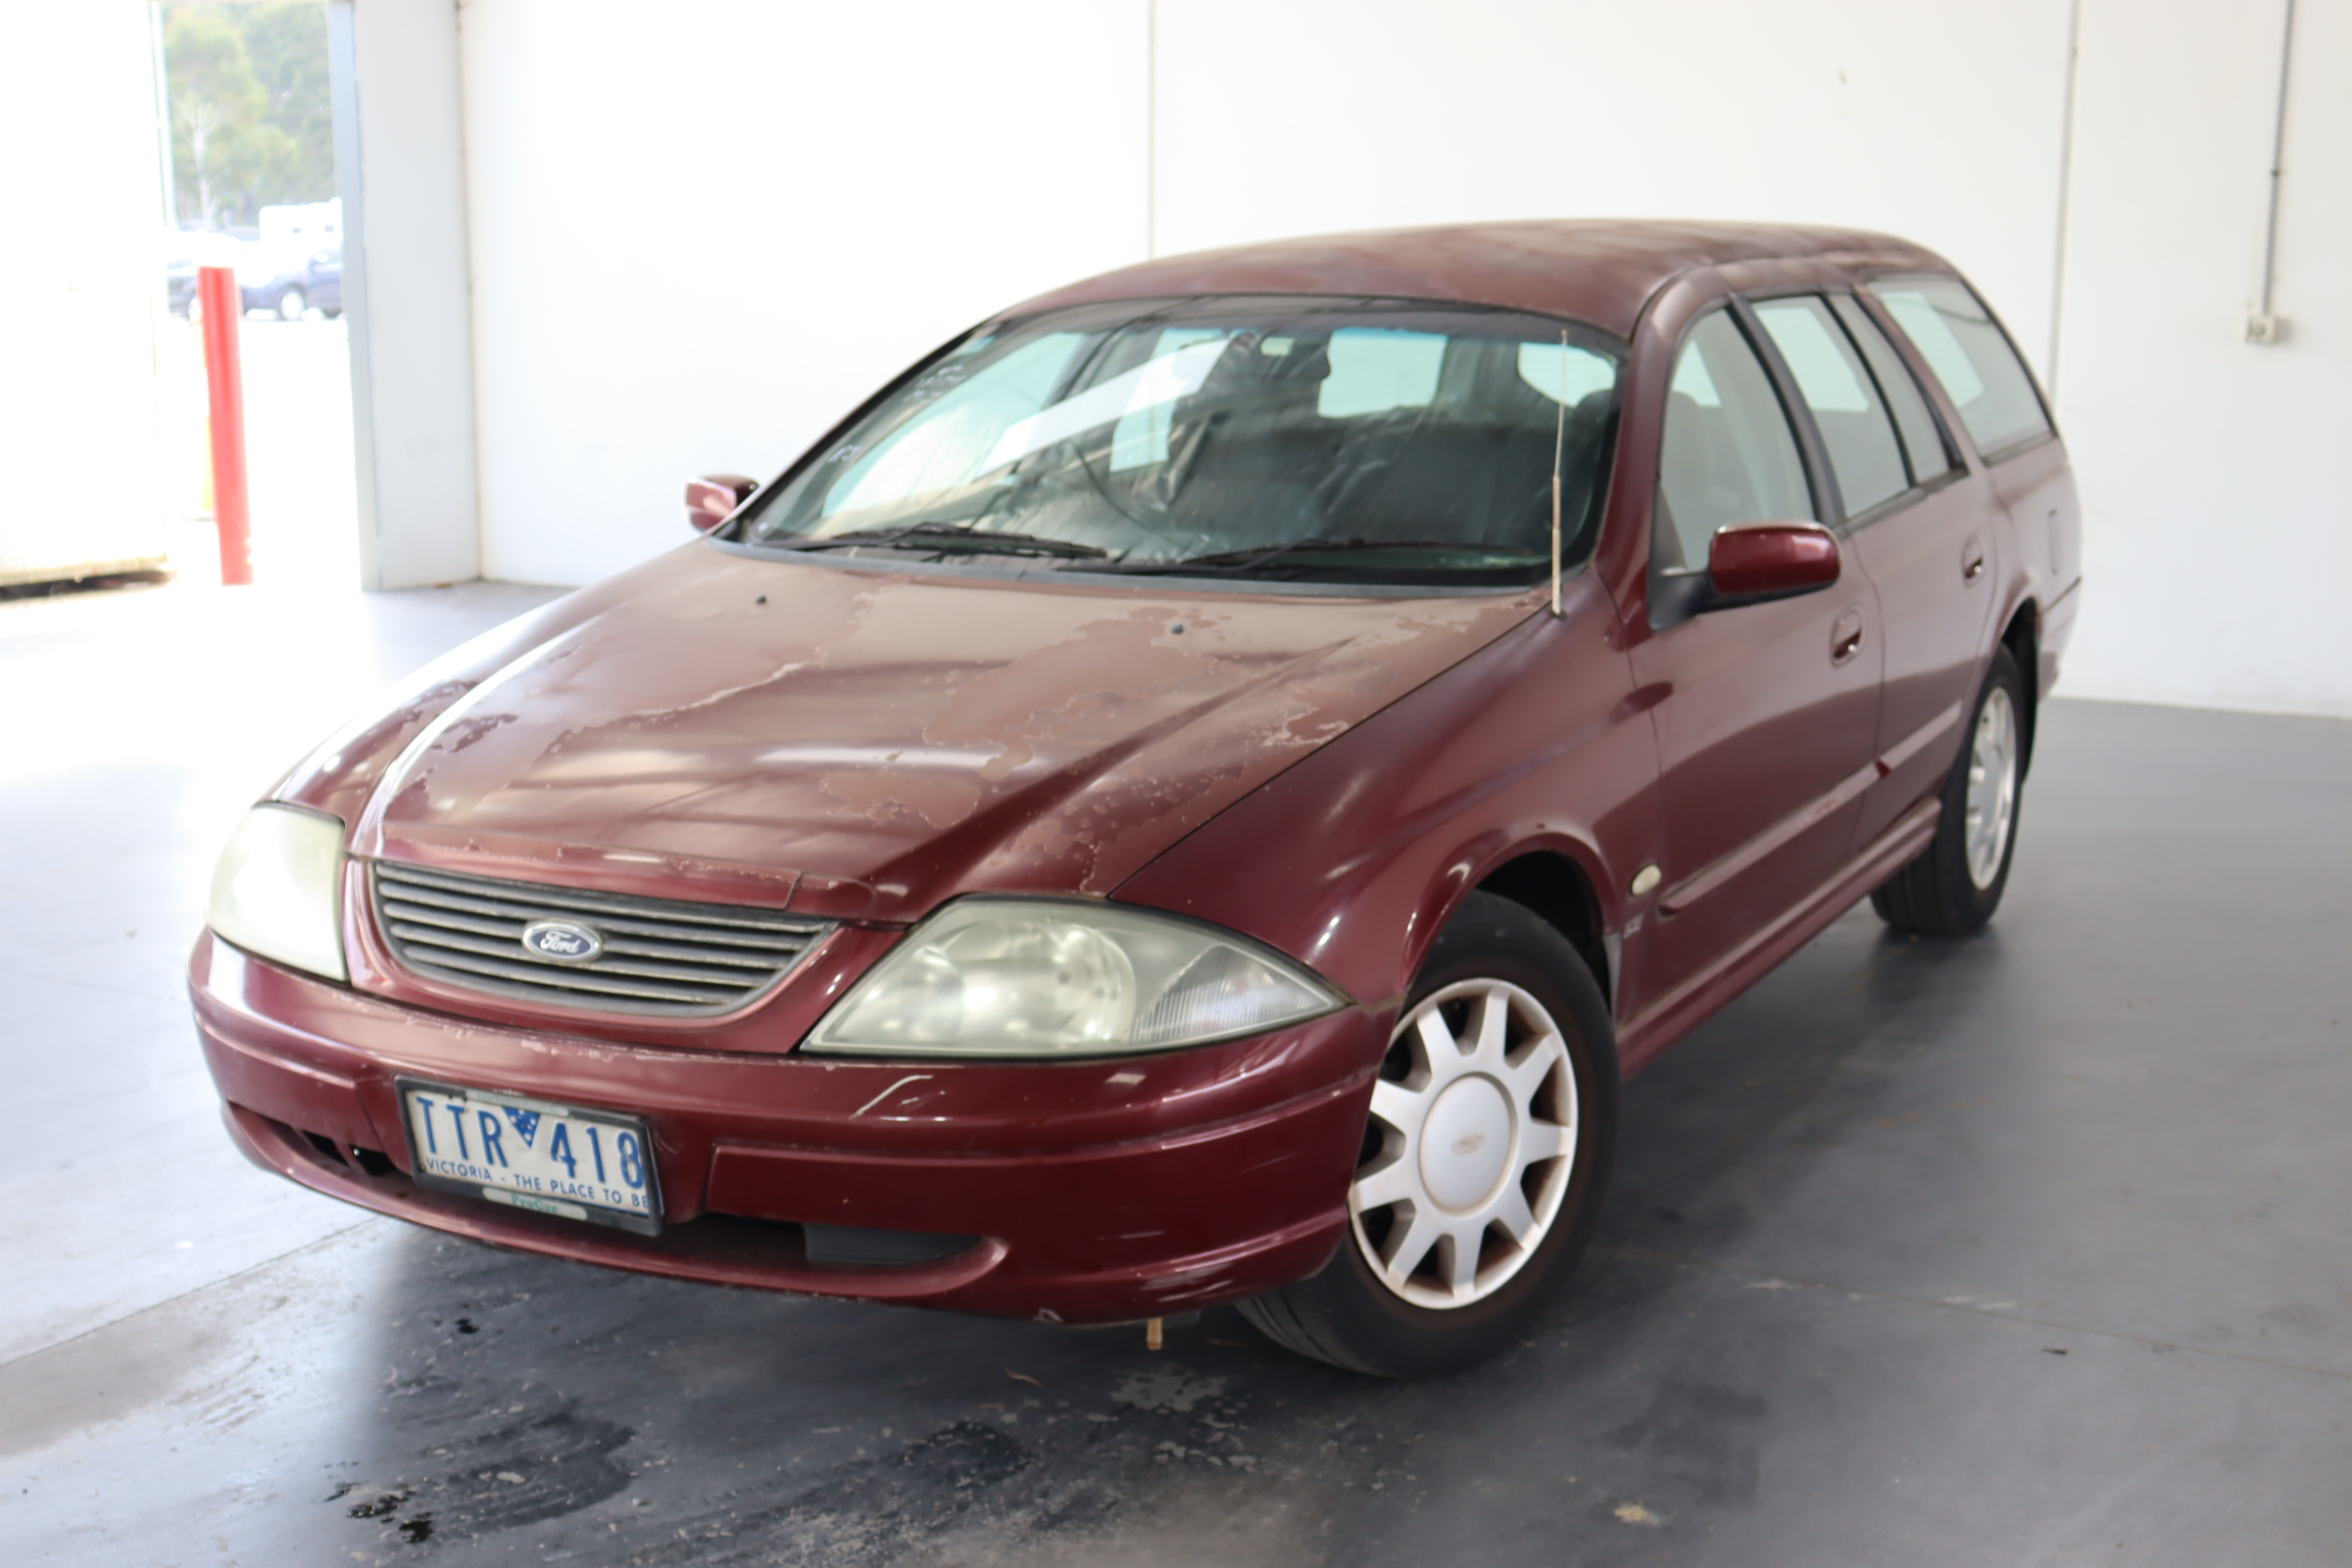 2002 Ford Falcon Forte AUIII Automatic Wagon